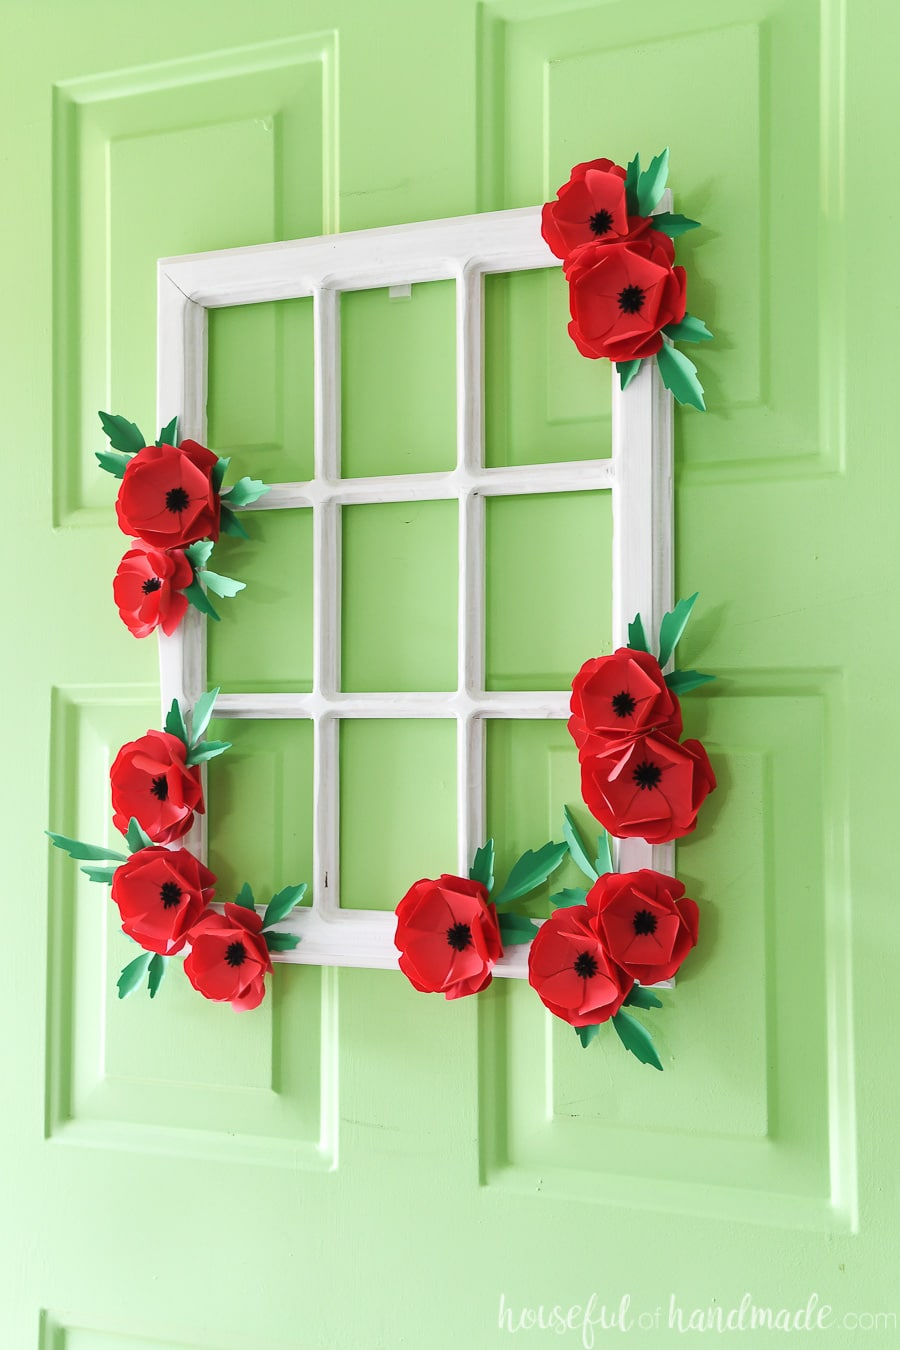 White window frame decorated with flowers to use as a wreath for the front door.